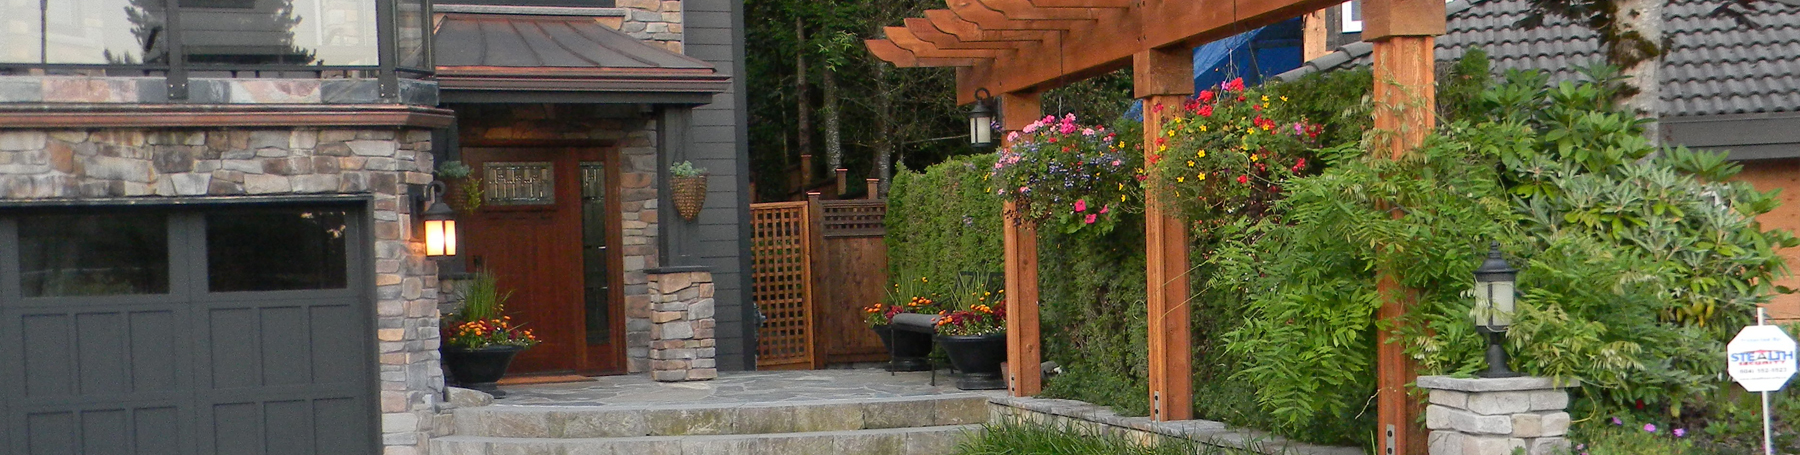 Landscape design and construction South Surrey, White Rock and Greater Vancouver